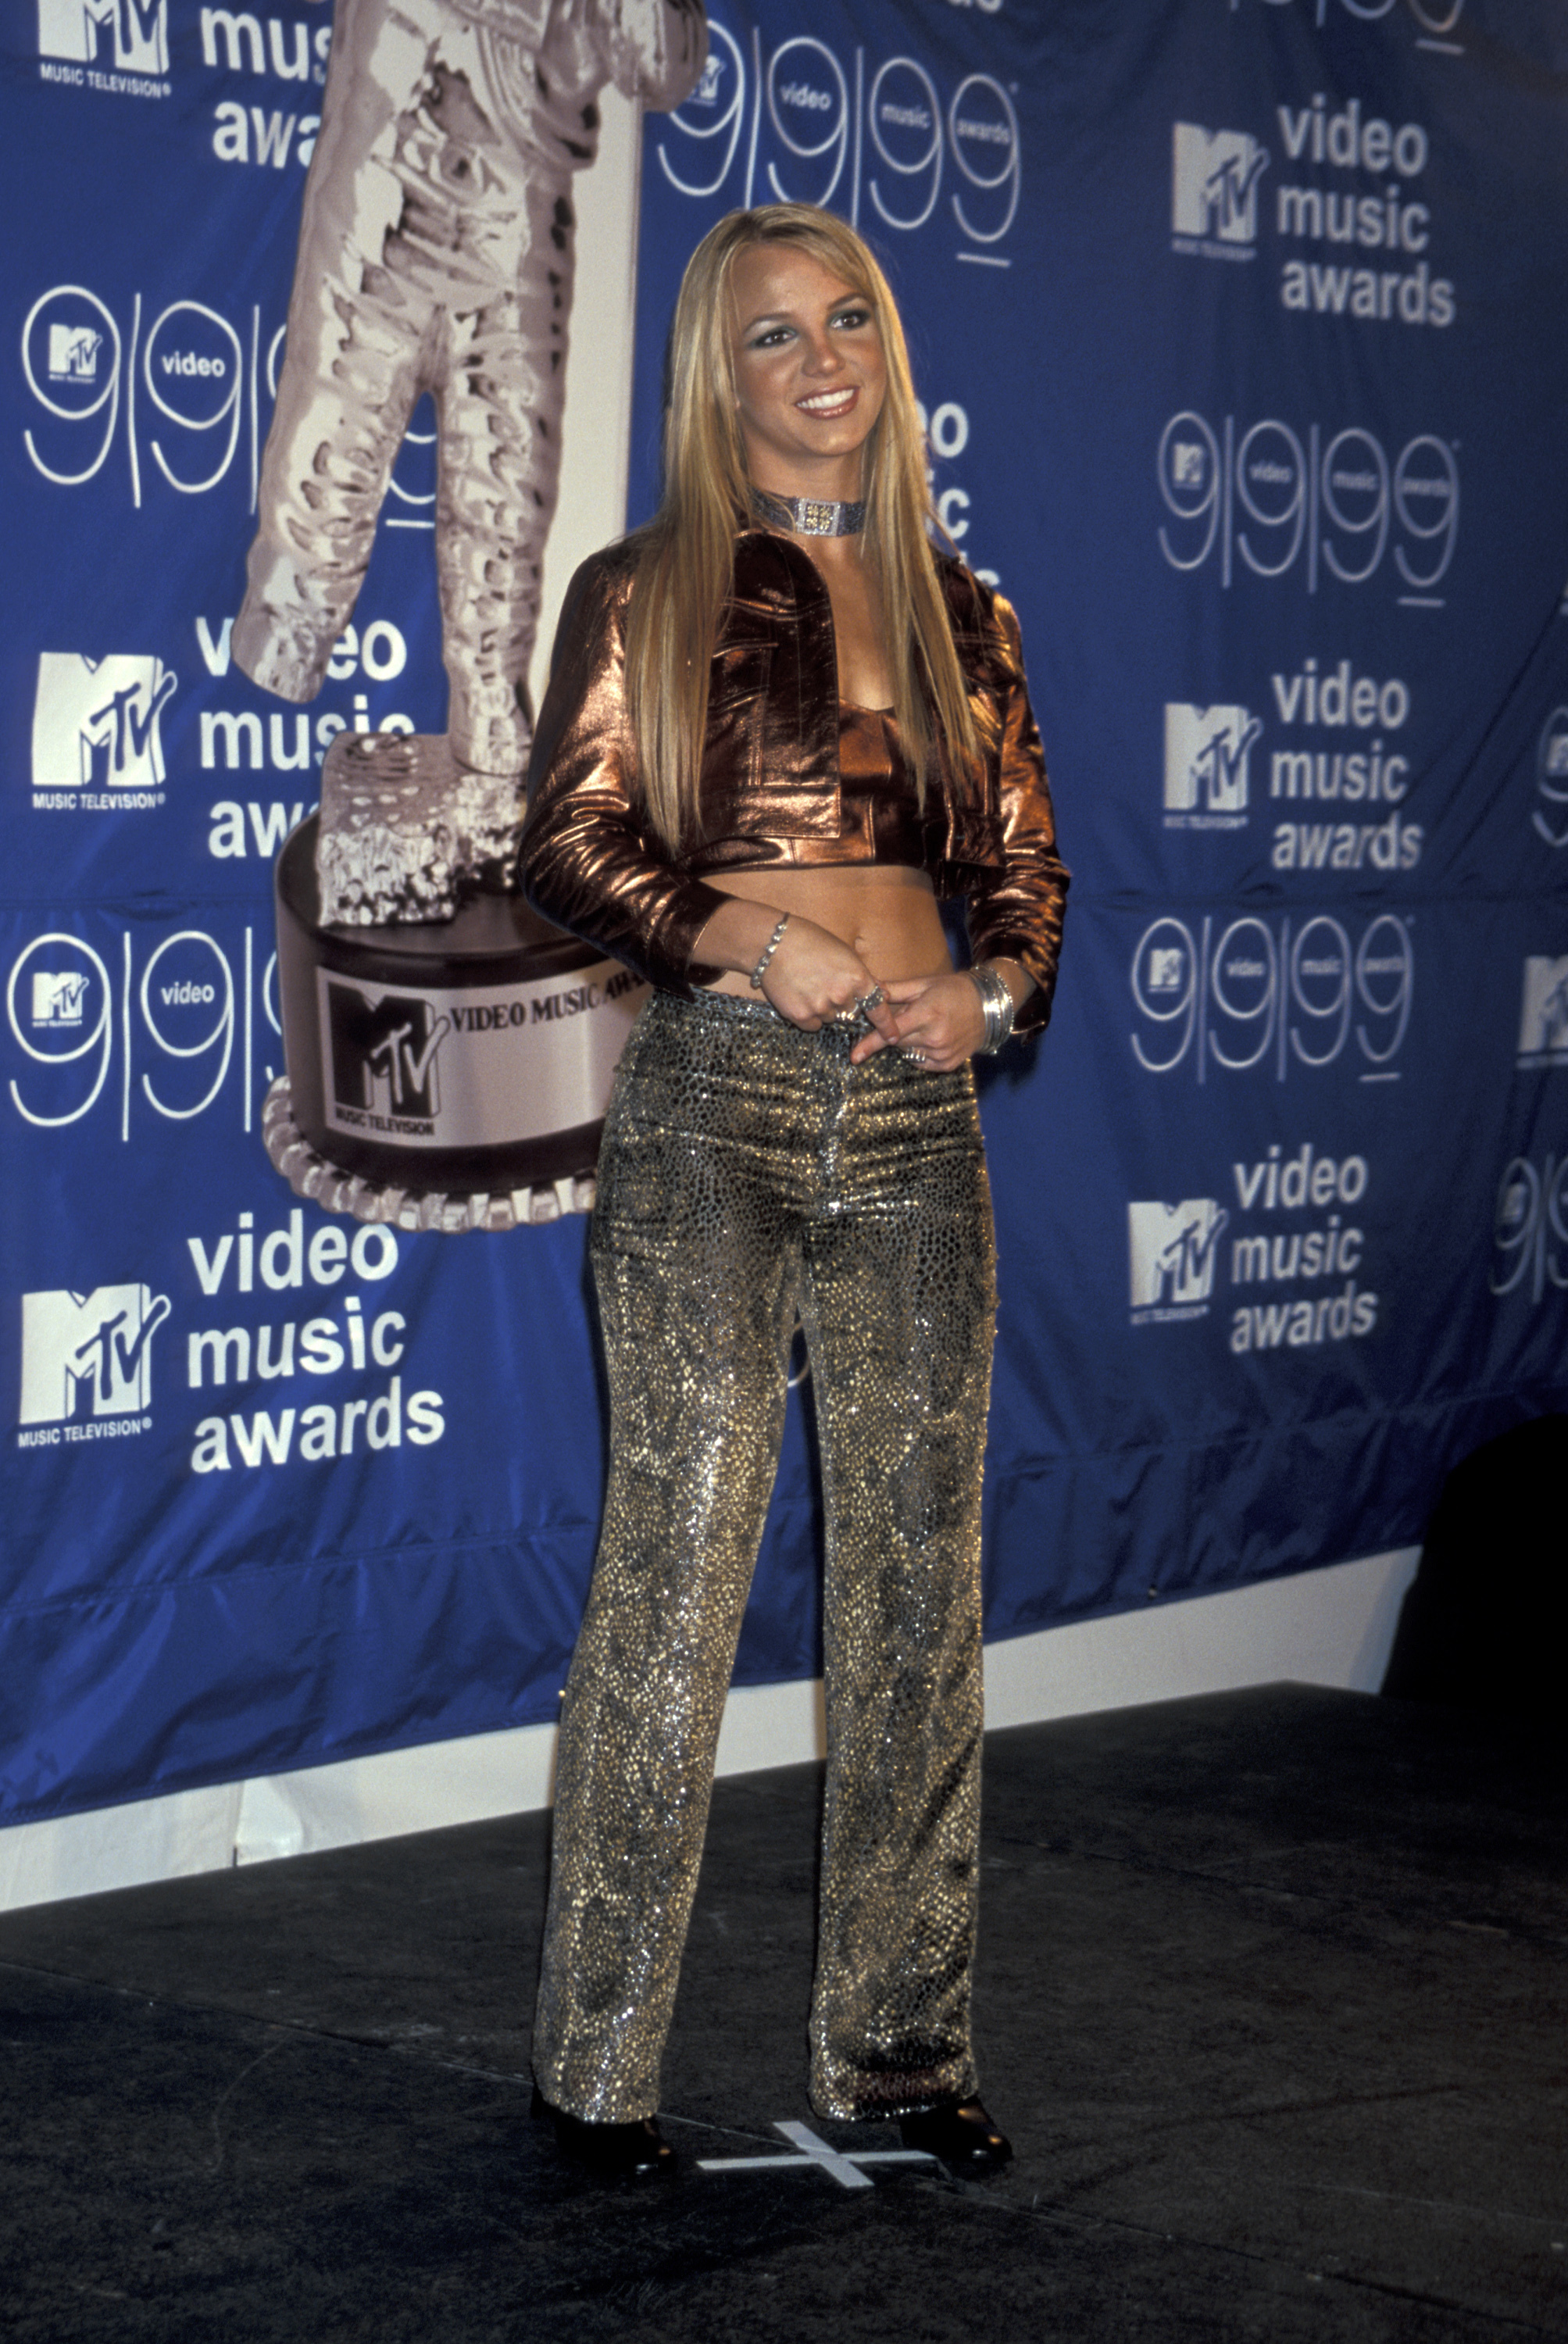 Britney Spears attends the MTV Video Music Awards in New York City on Sept. 9, 1999.